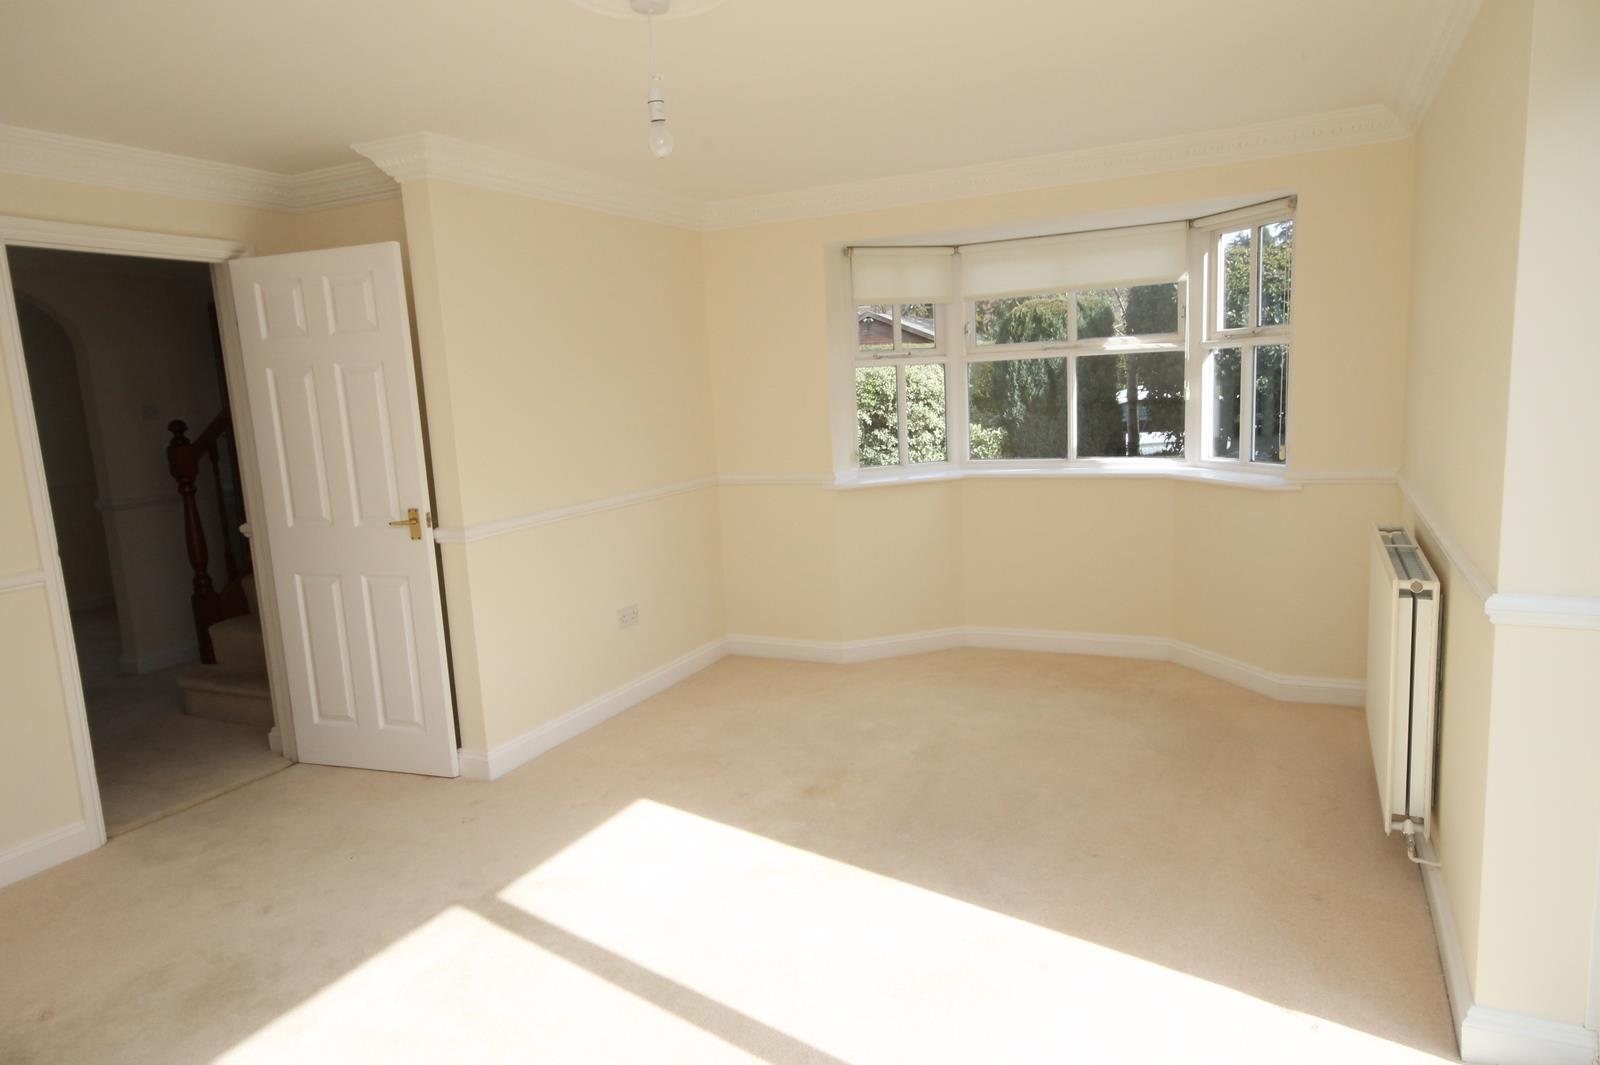 4 bed house to rent in Reedley Road, Bristol 2